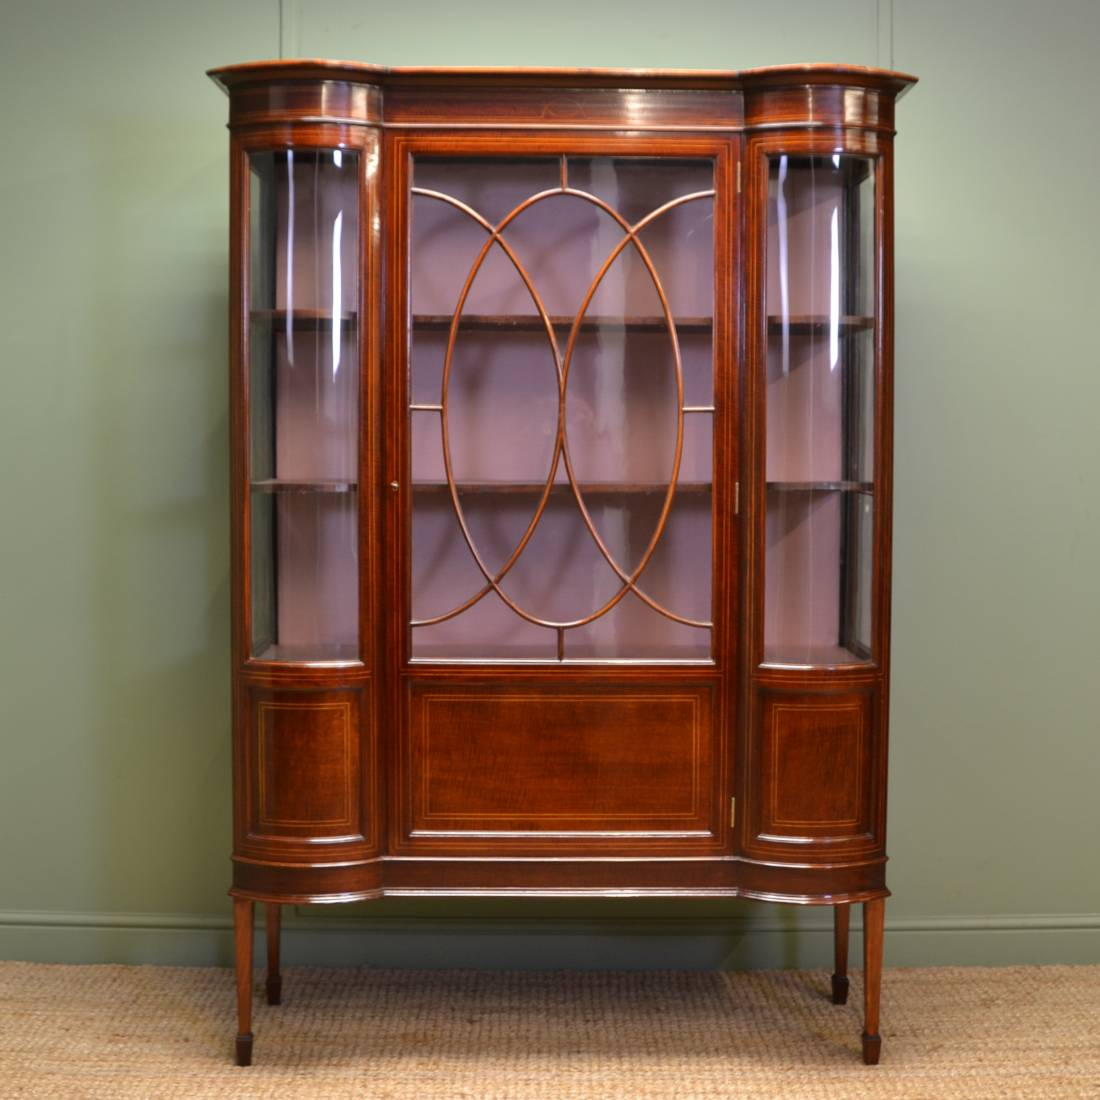 Magnificent Quality Feathered Mahogany, Quality Edwardian Inlaid Antique  Display Cabinet. - Magnificent Quality Feathered Mahogany, Quality Edwardian Inlaid